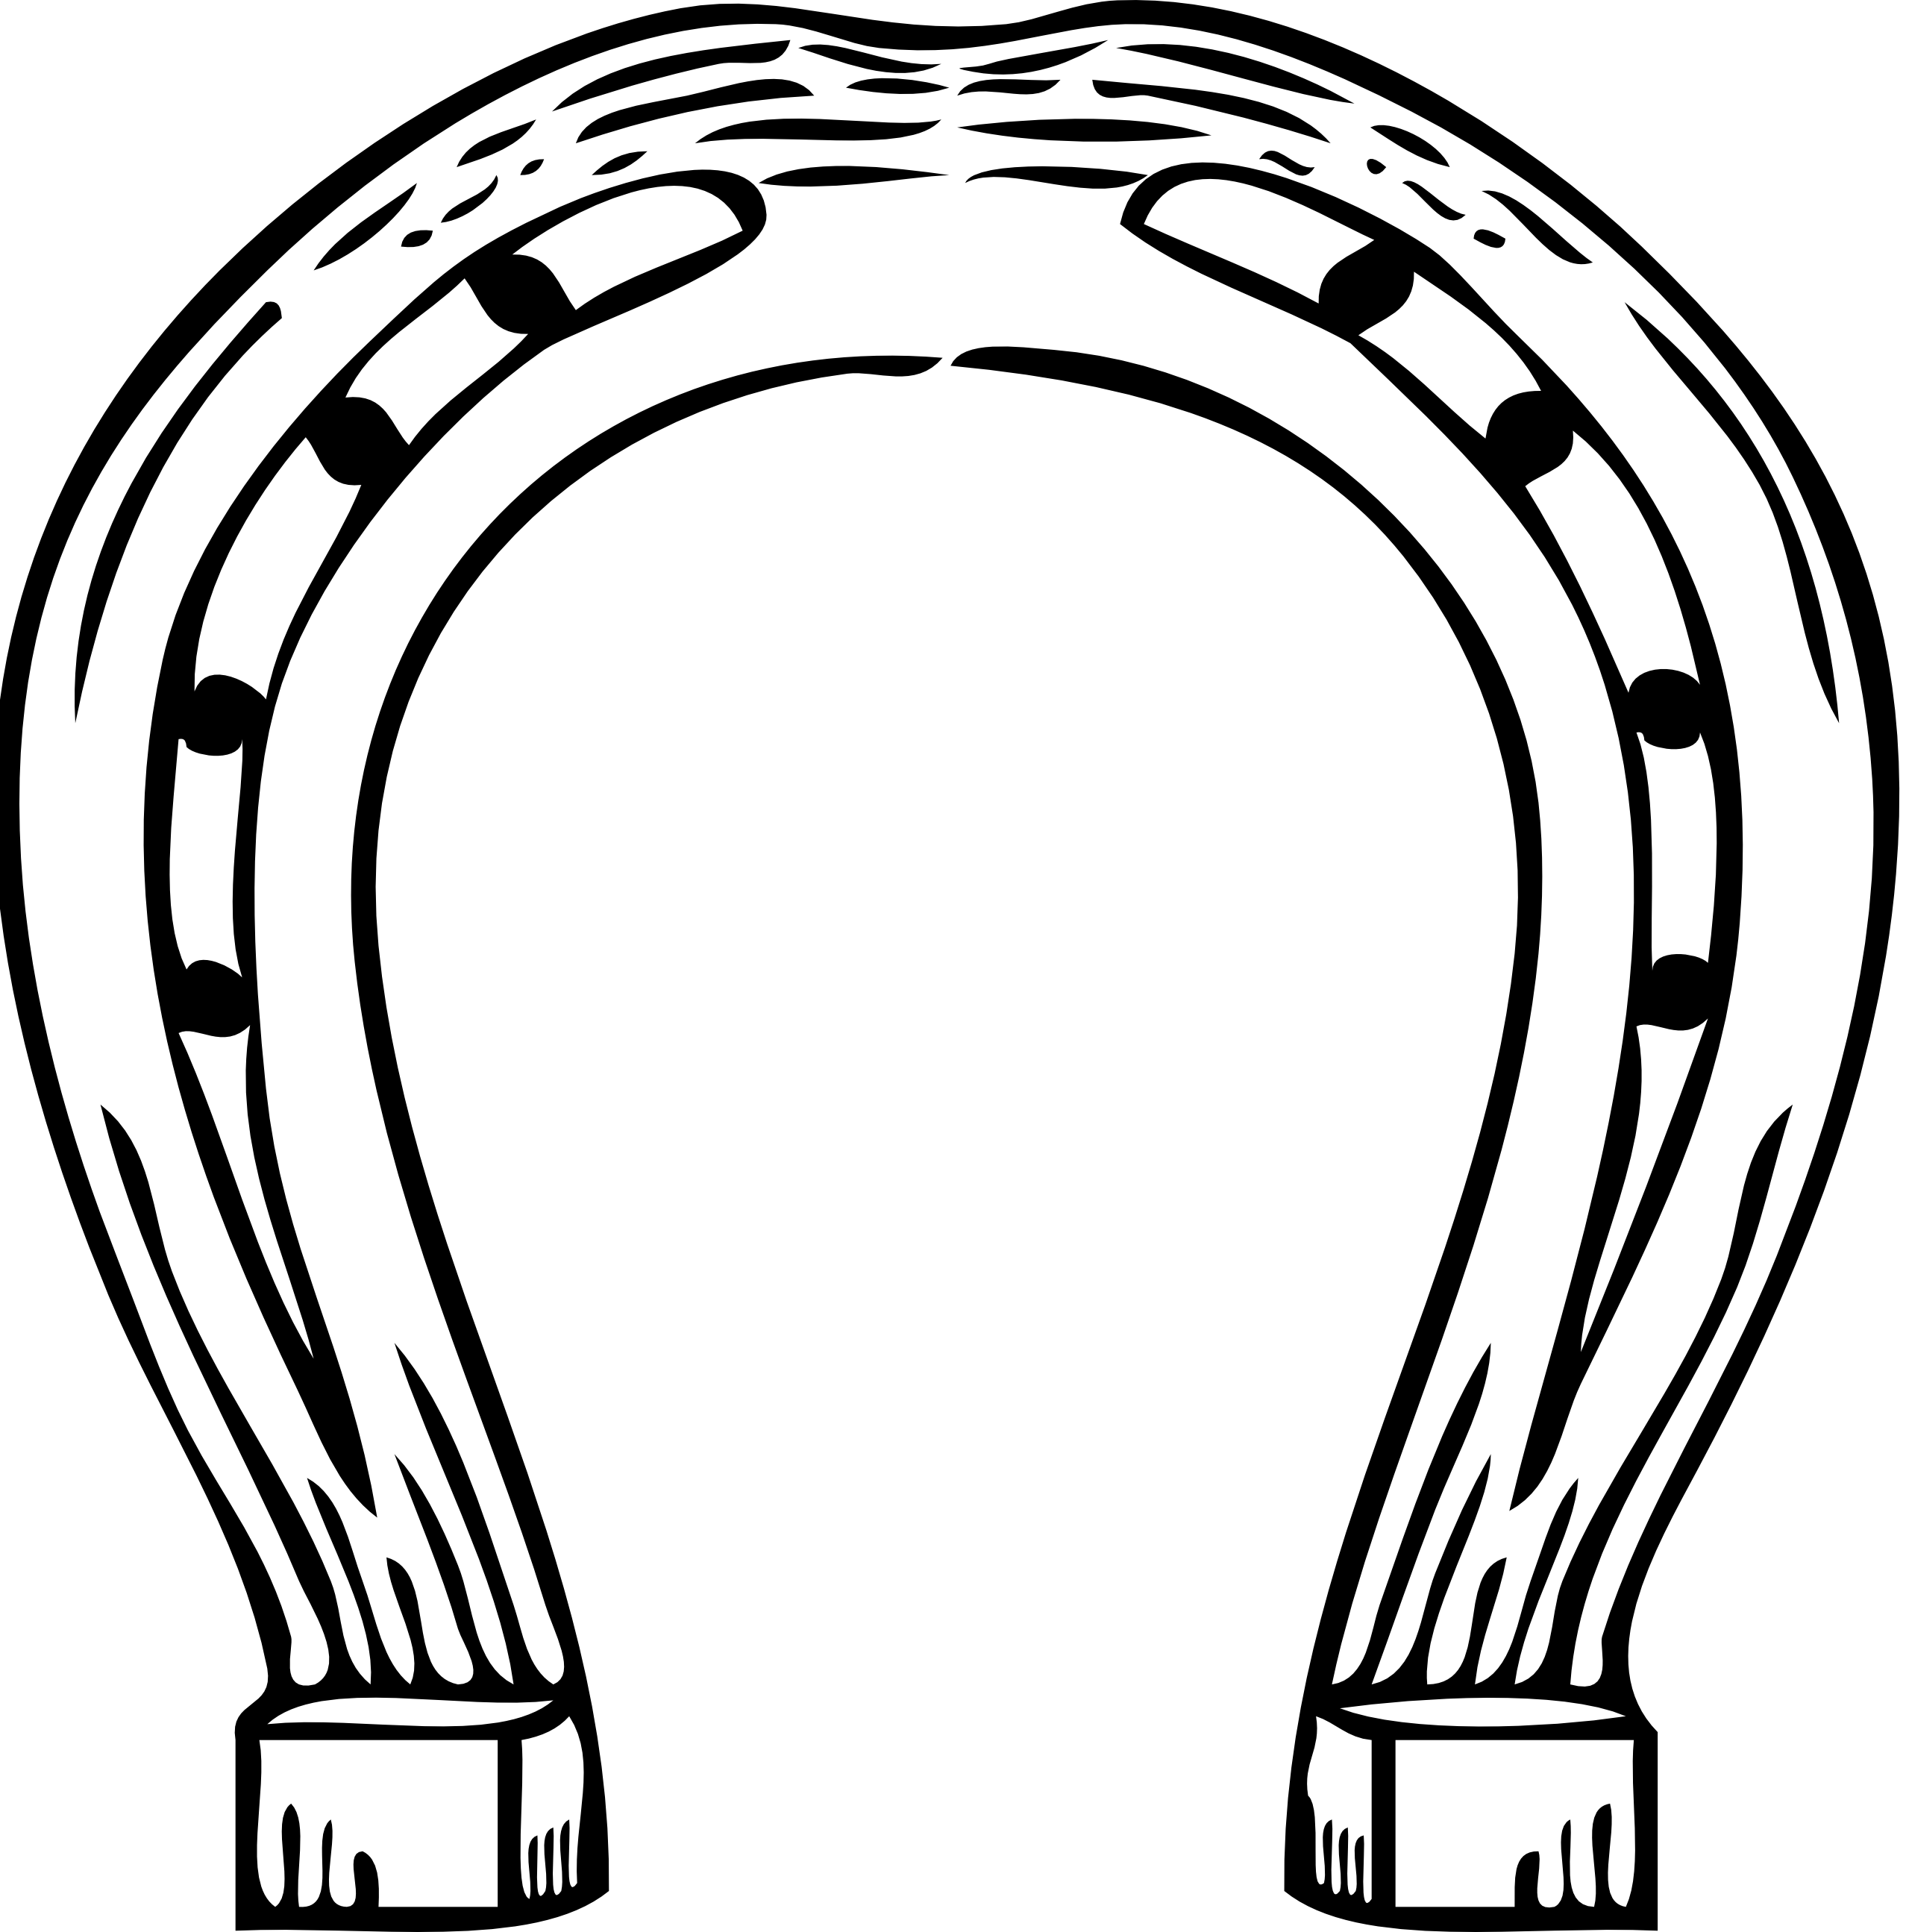 Horseshoe Clip Art Free - Cliparts.co